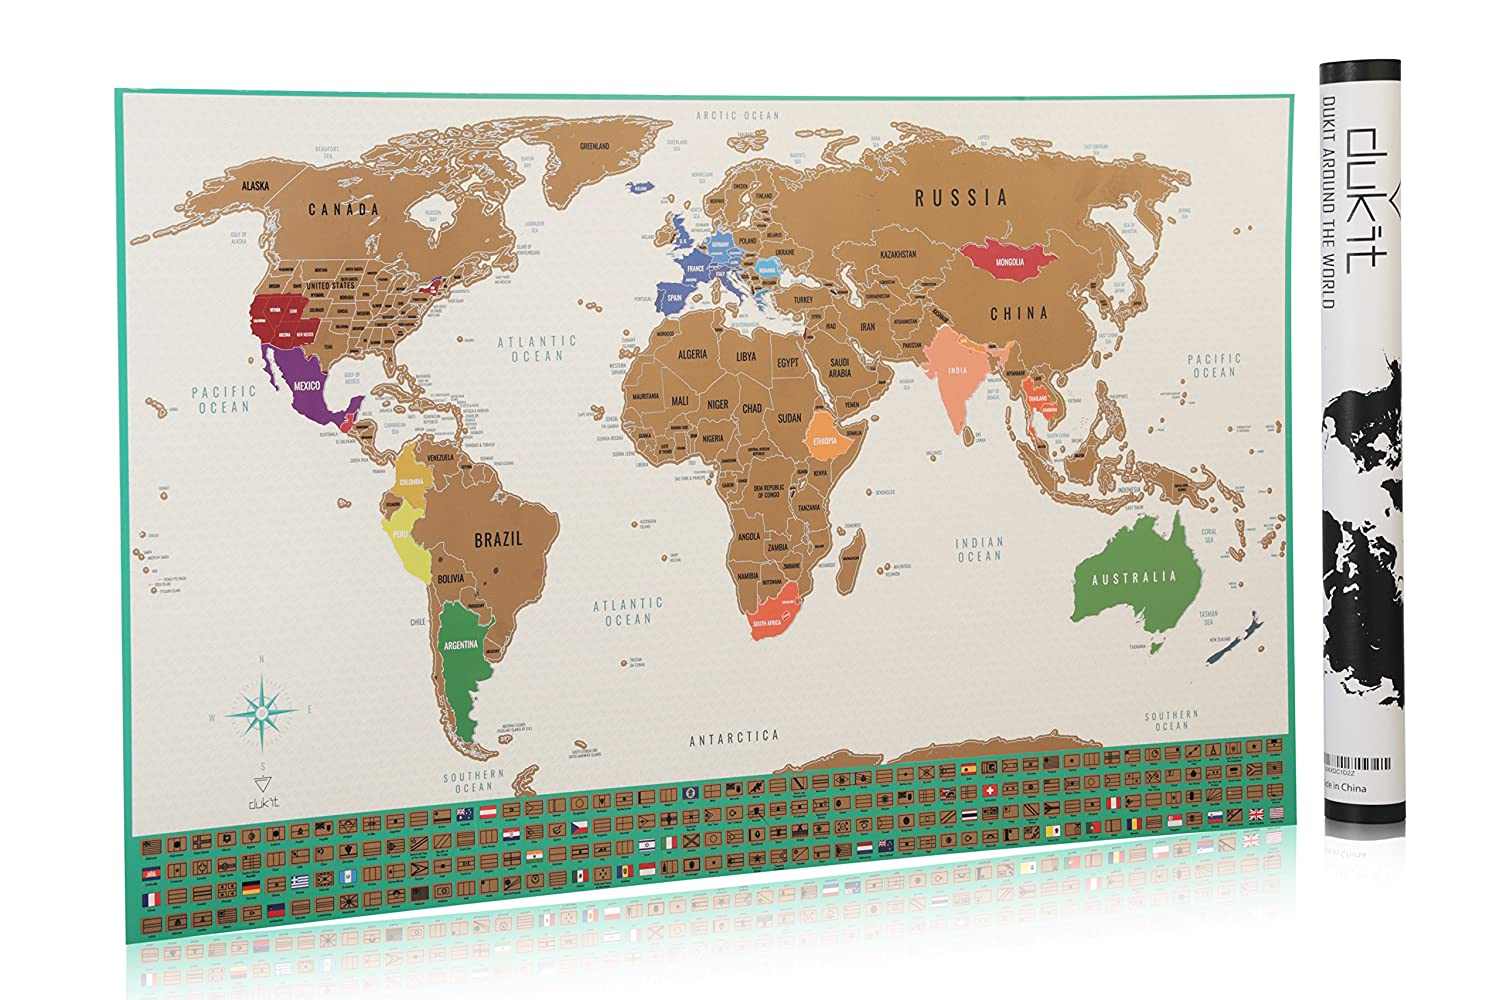 Amazon scratch off map of the world with us states outlined amazon scratch off map of the world with us states outlined large 345 x 205 country flags exclusive islands added scratch tool included gumiabroncs Images